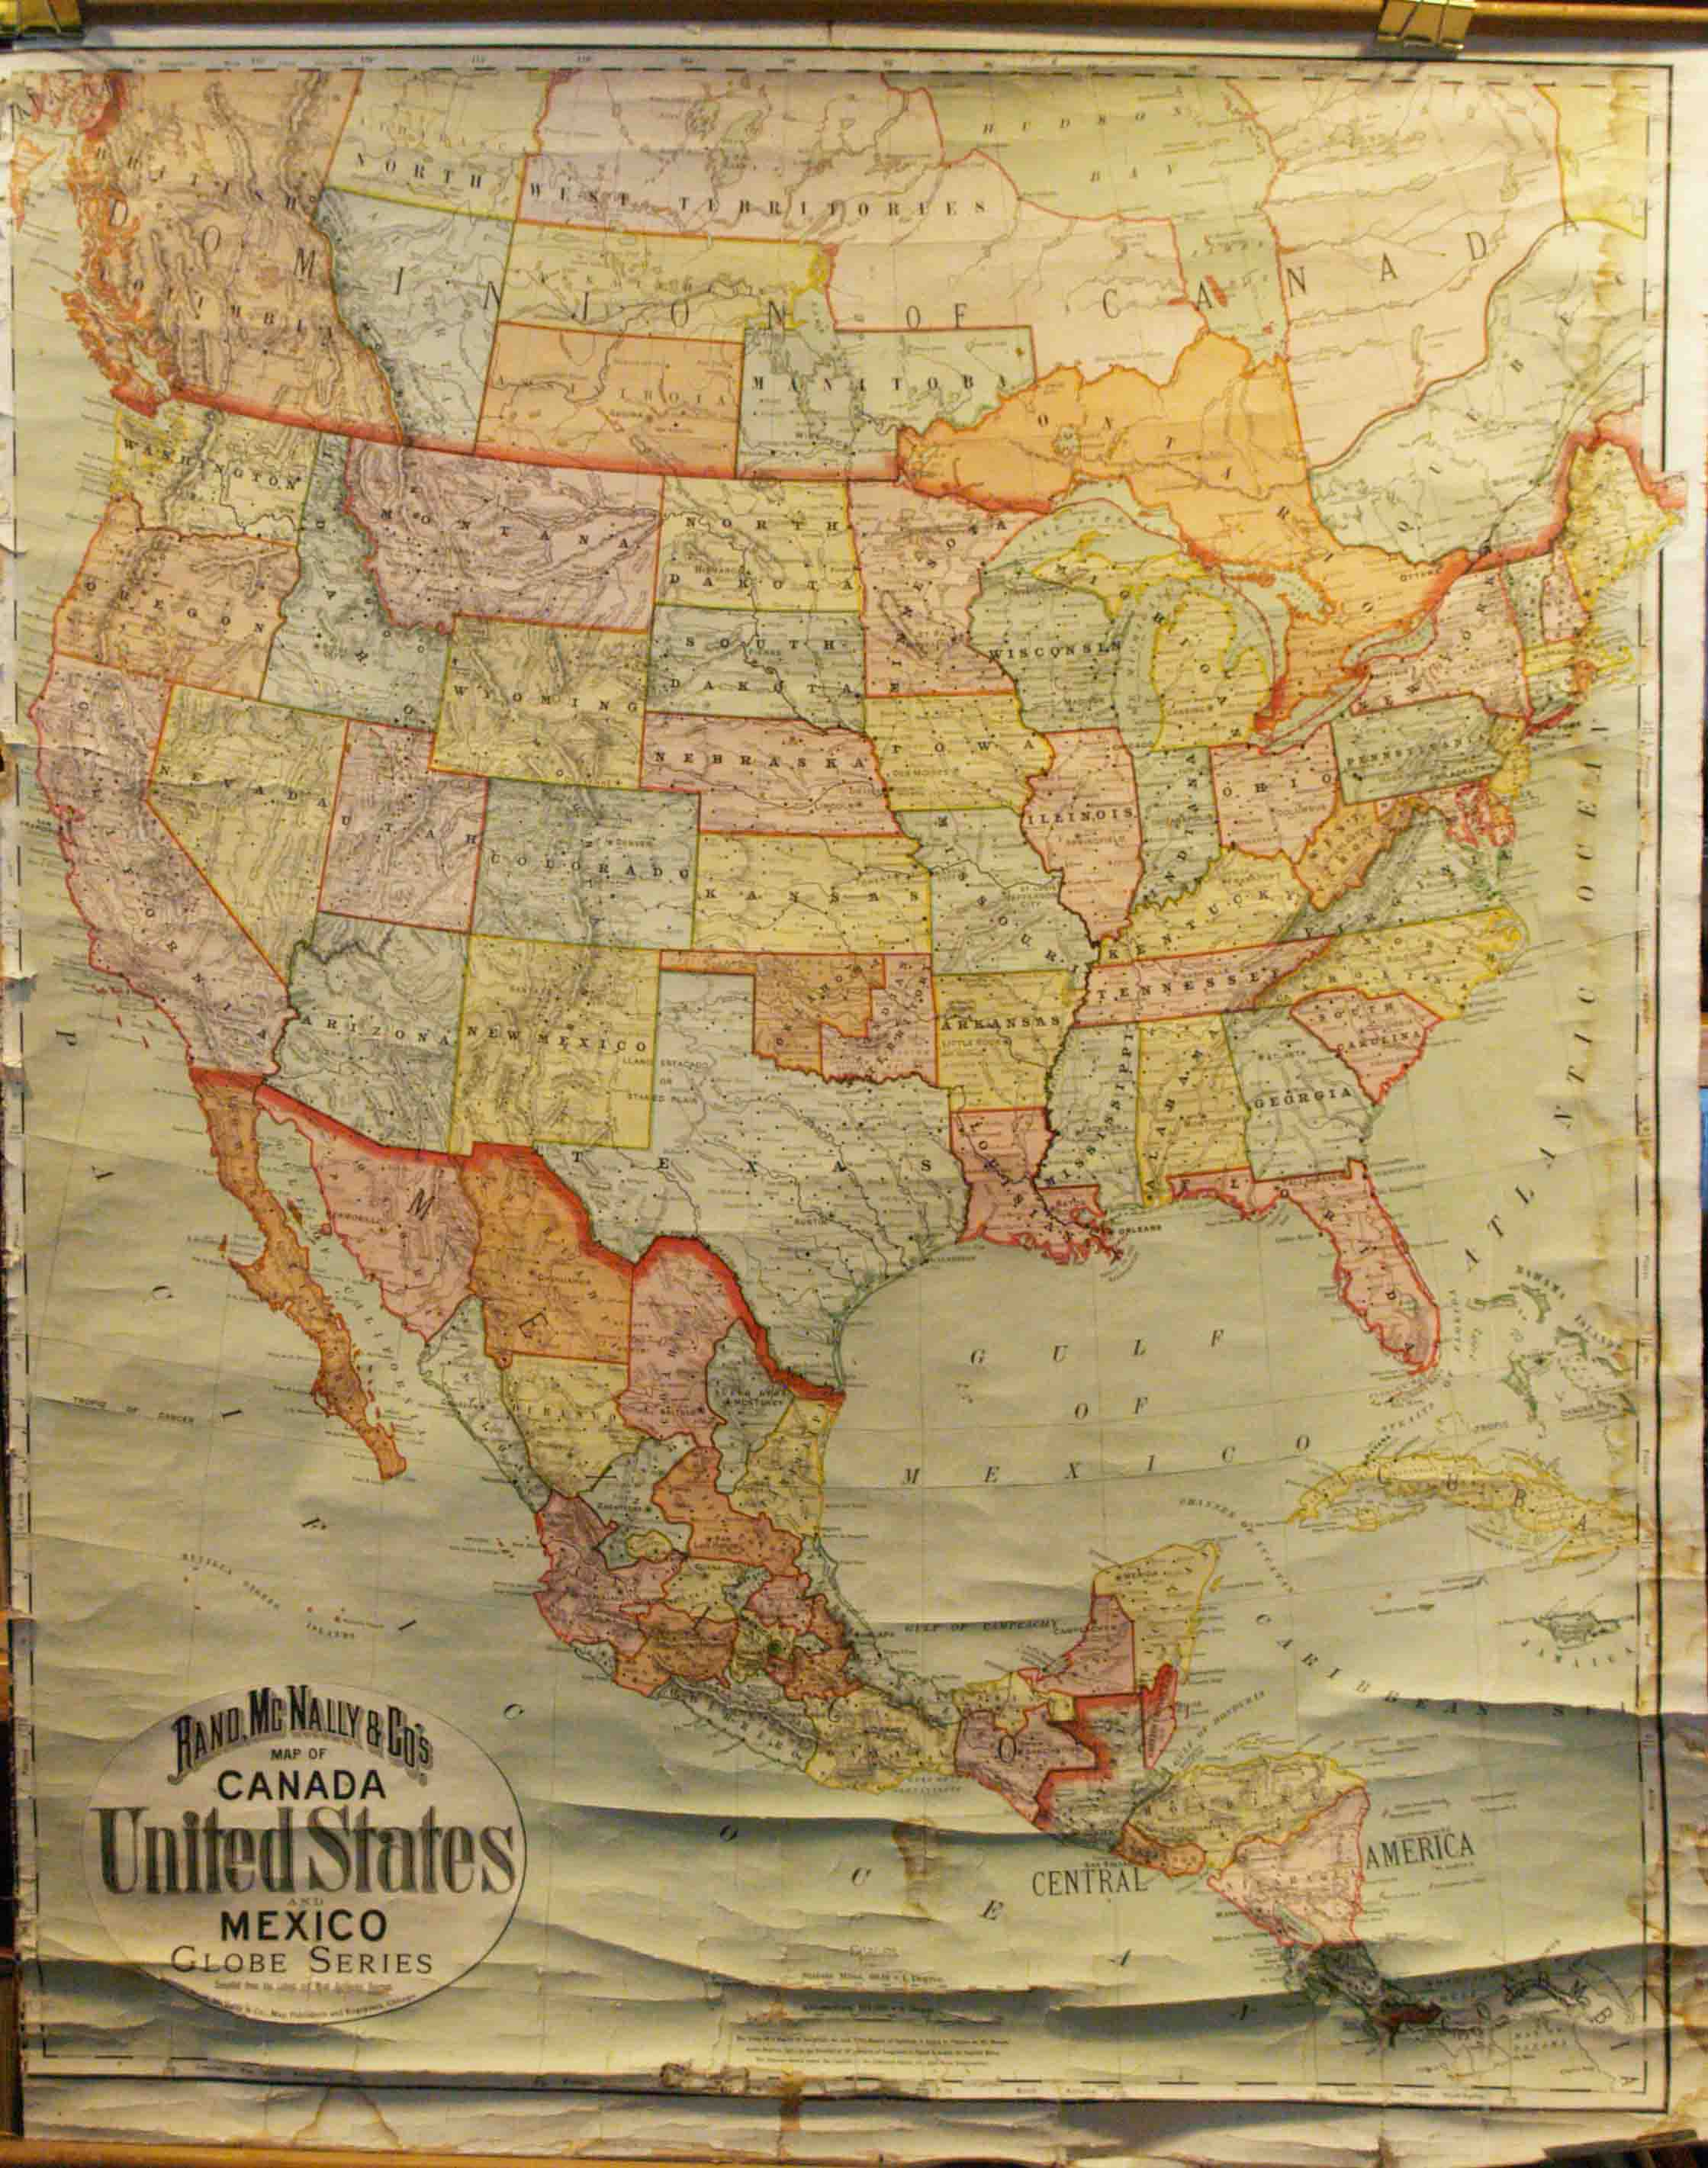 Map Of Canada On Globe.Rand Mcnally S Map Of Canada United States And Mexico Globe Series